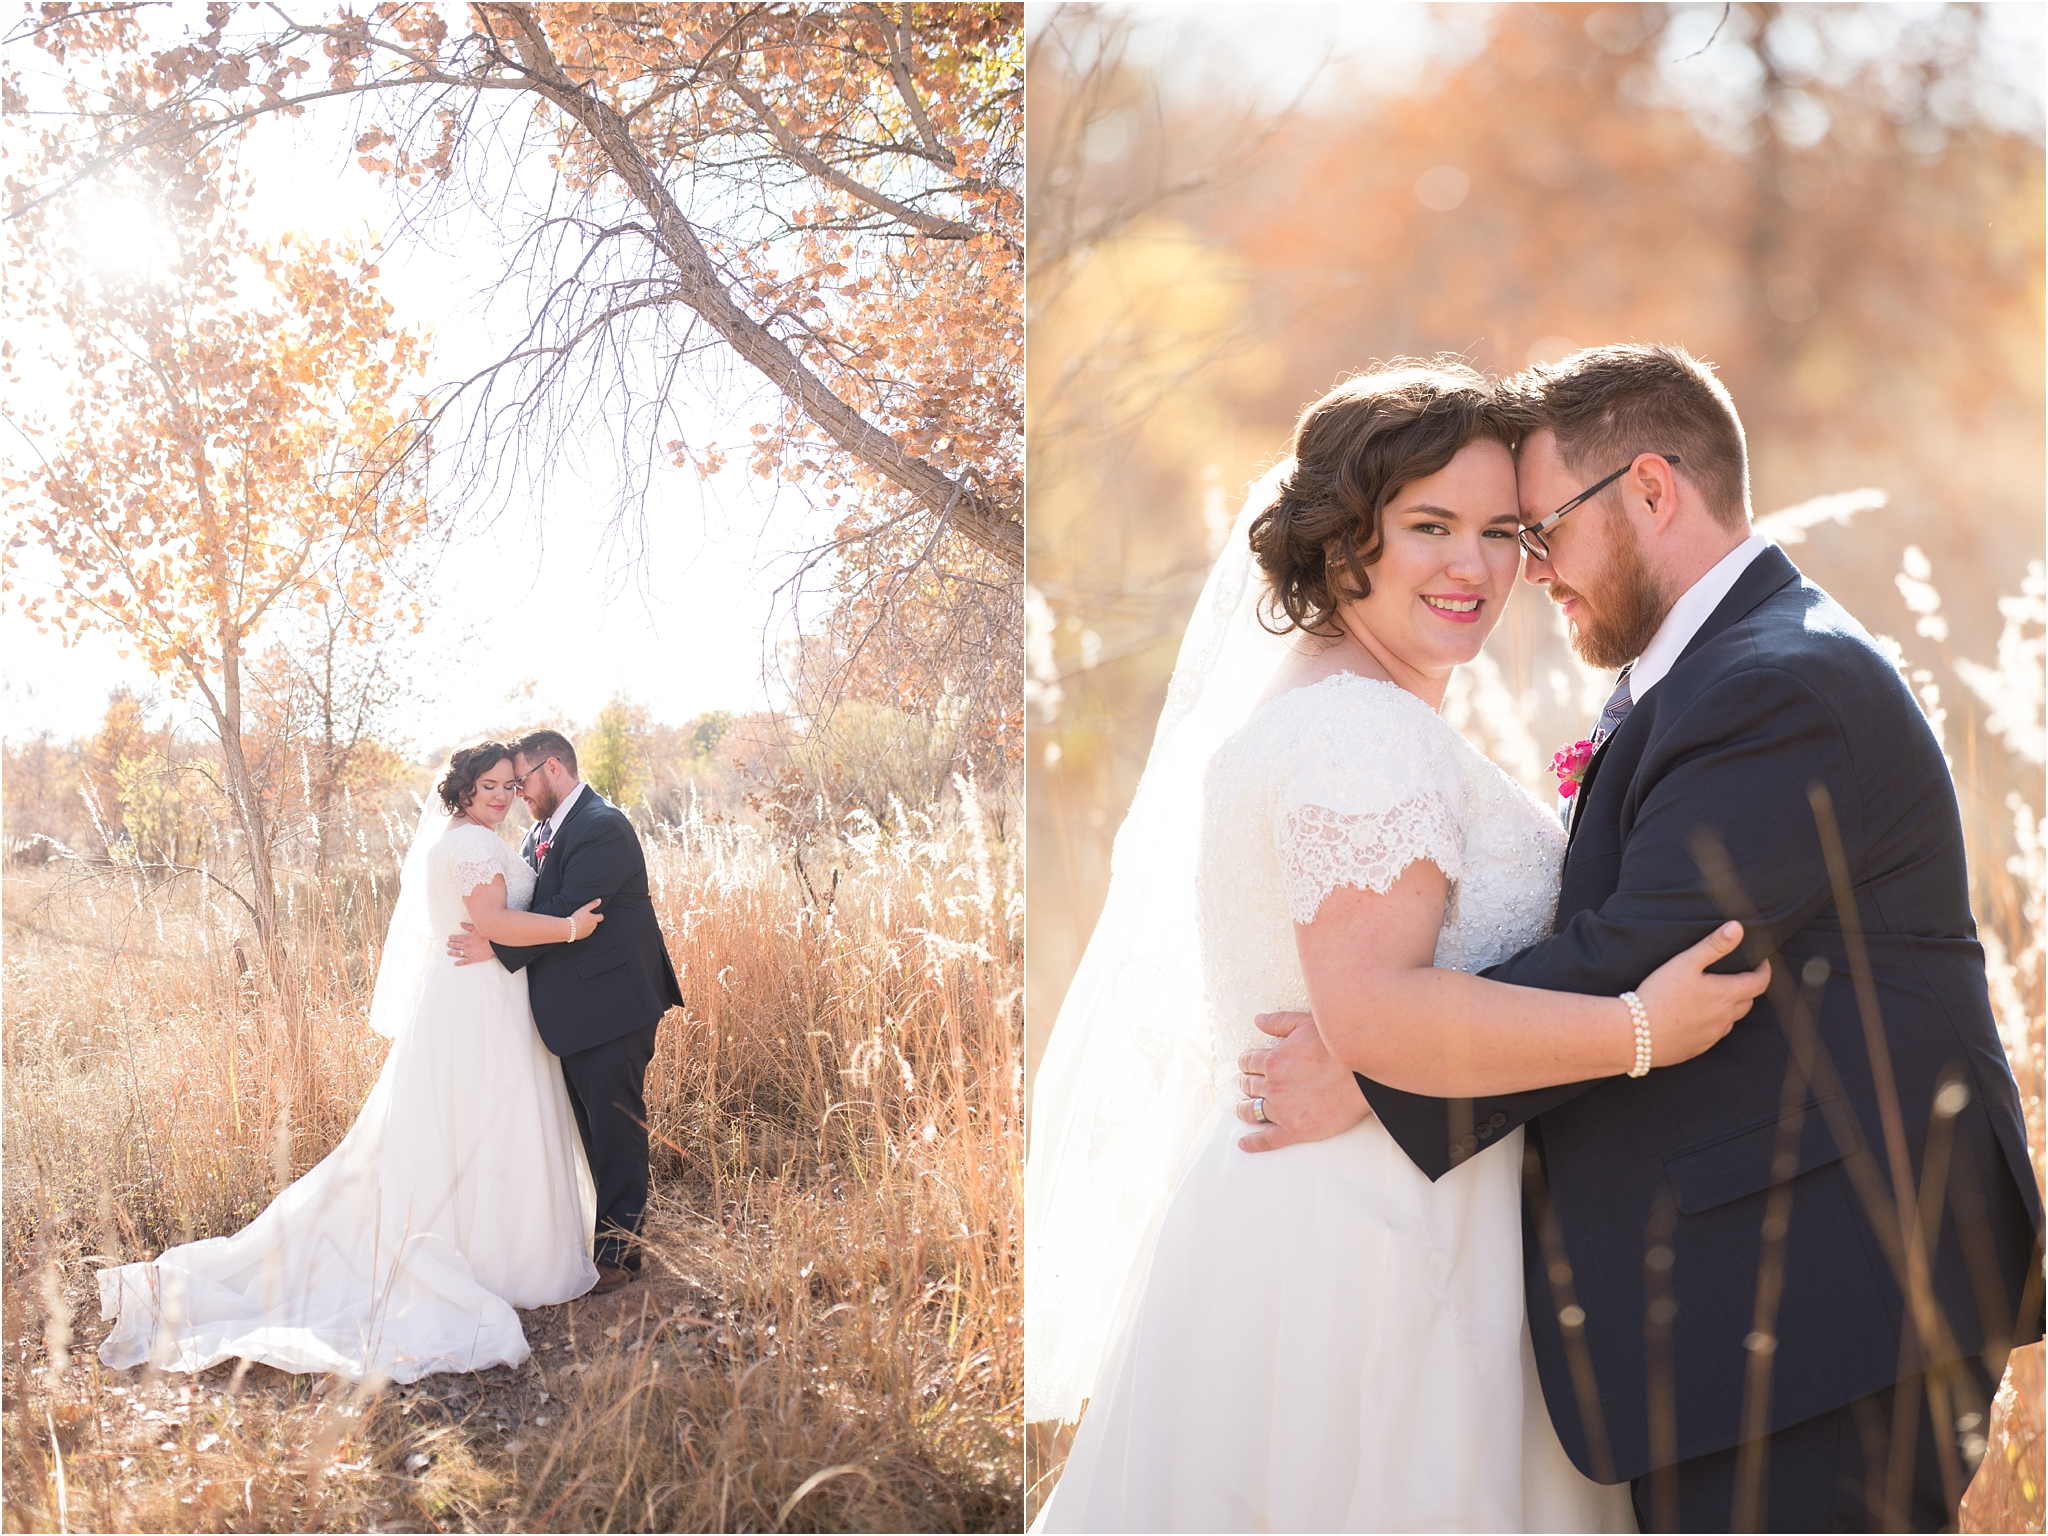 kayla kitts photography - albuquerque wedding photographer - hairpins and scissors - a cake odyssey - new mexico wedding photographer_0116.jpg